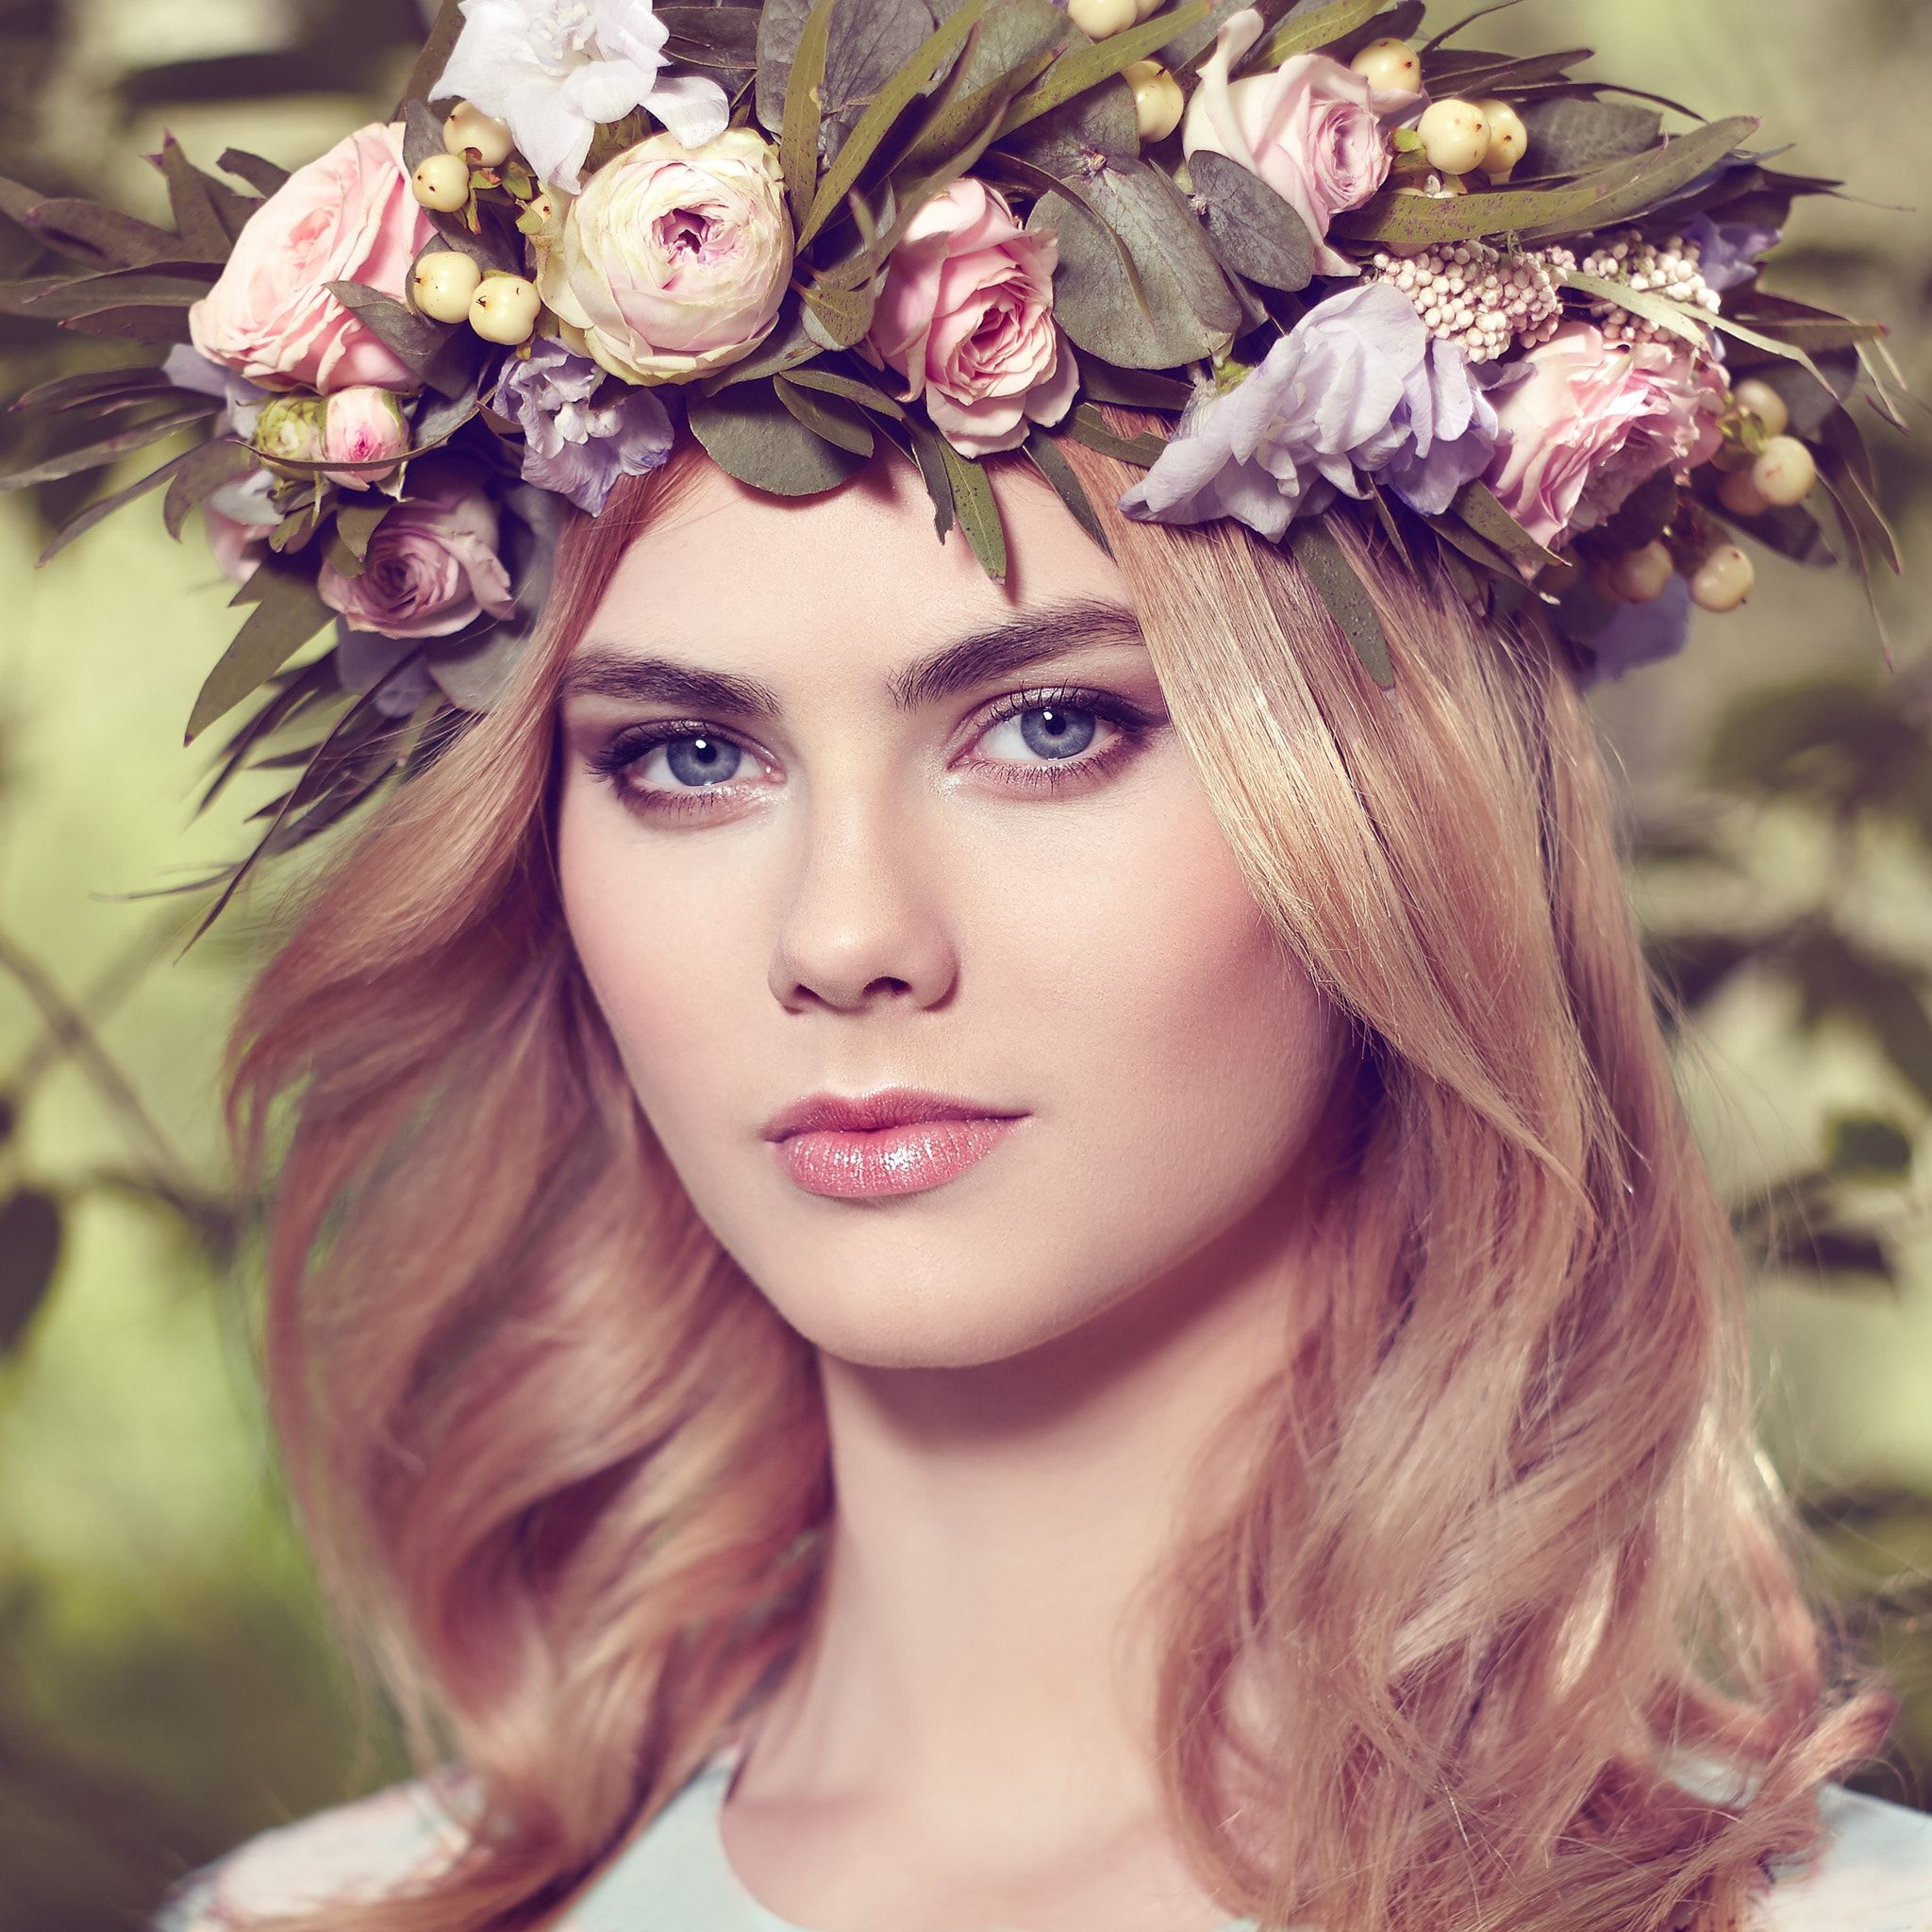 Beautiful blonde woman with flower wreath on her head beautiful woman beautiful blonde woman with flower izmirmasajfo Image collections